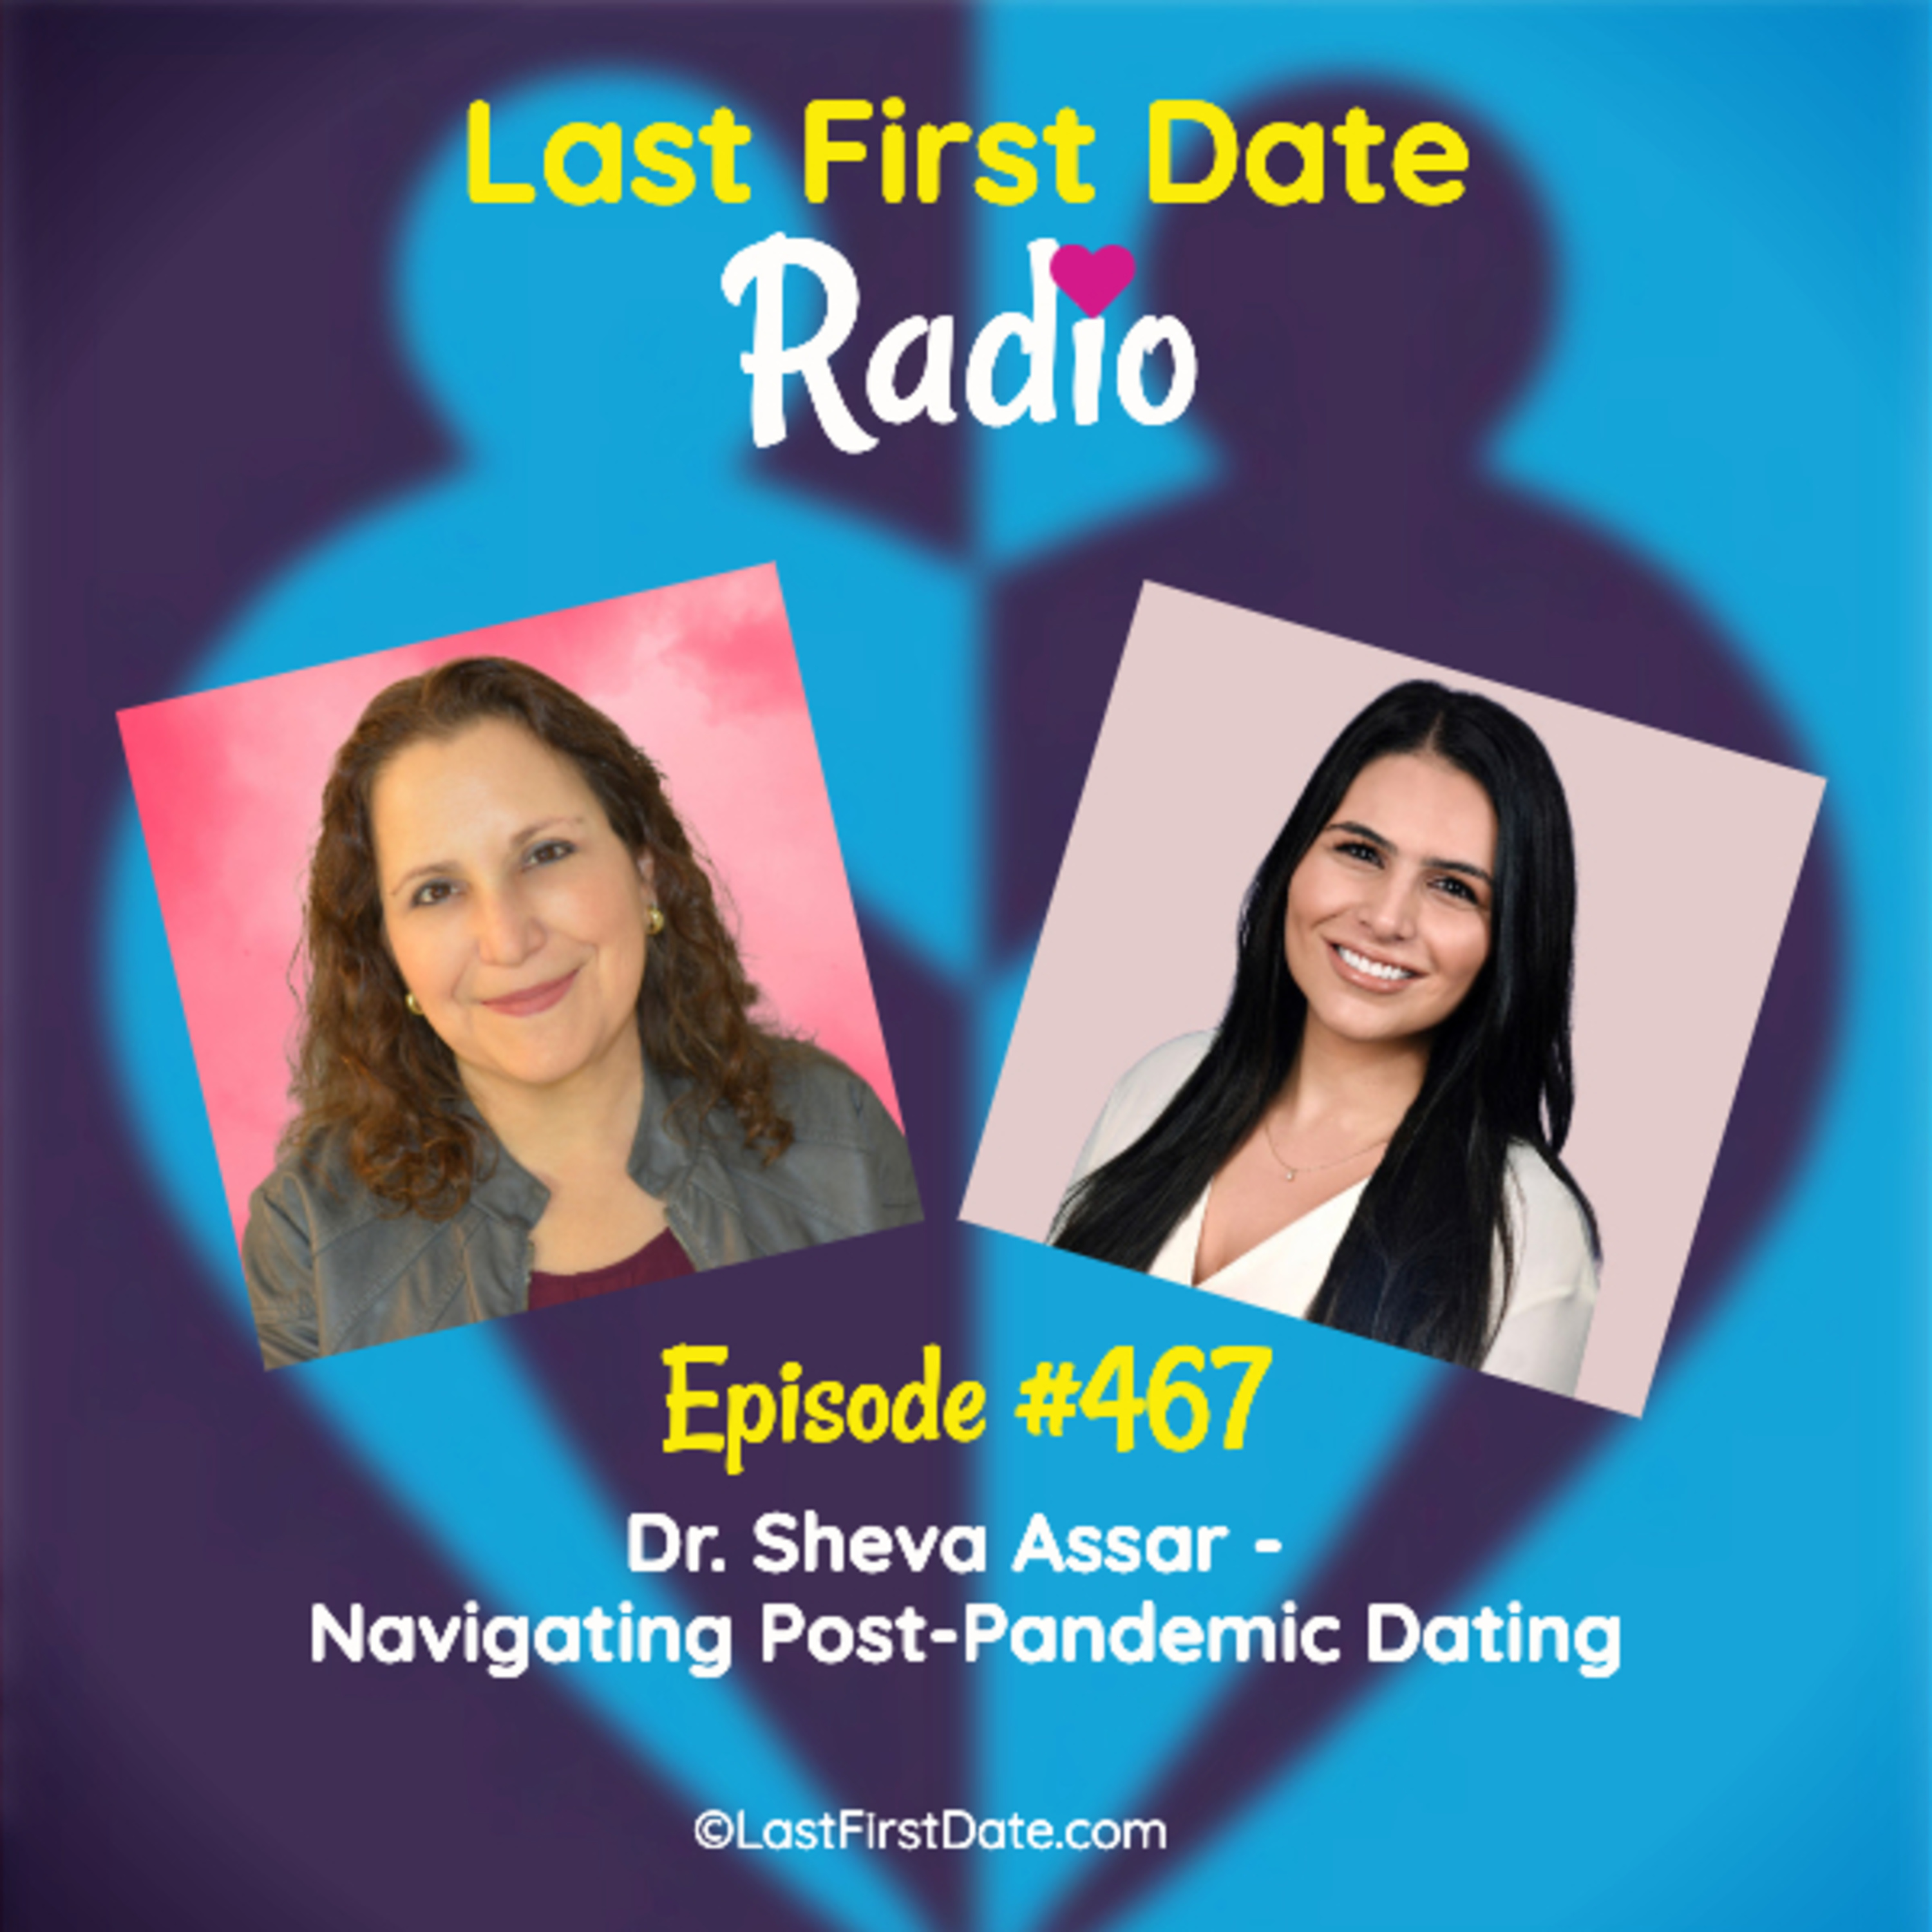 Last First Date Radio - EP 467: Dr. Sheva Assar - Navigating Post-Pandemic Dating